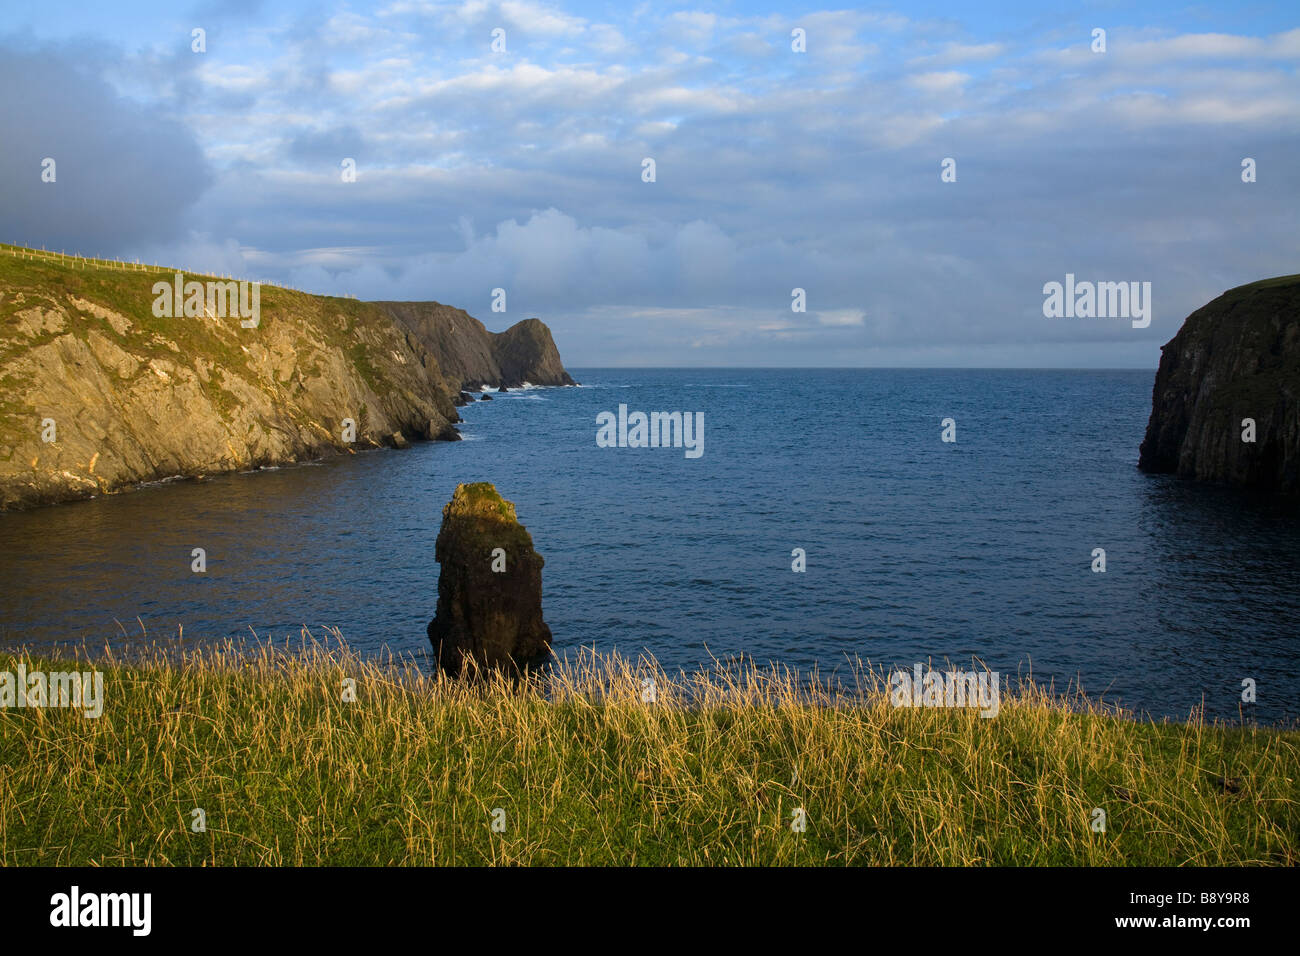 Cliffs on the coast, Malin Beg Bay, Bunglas Cliffs, County Donegal, Ulster Province, Ireland - Stock Image